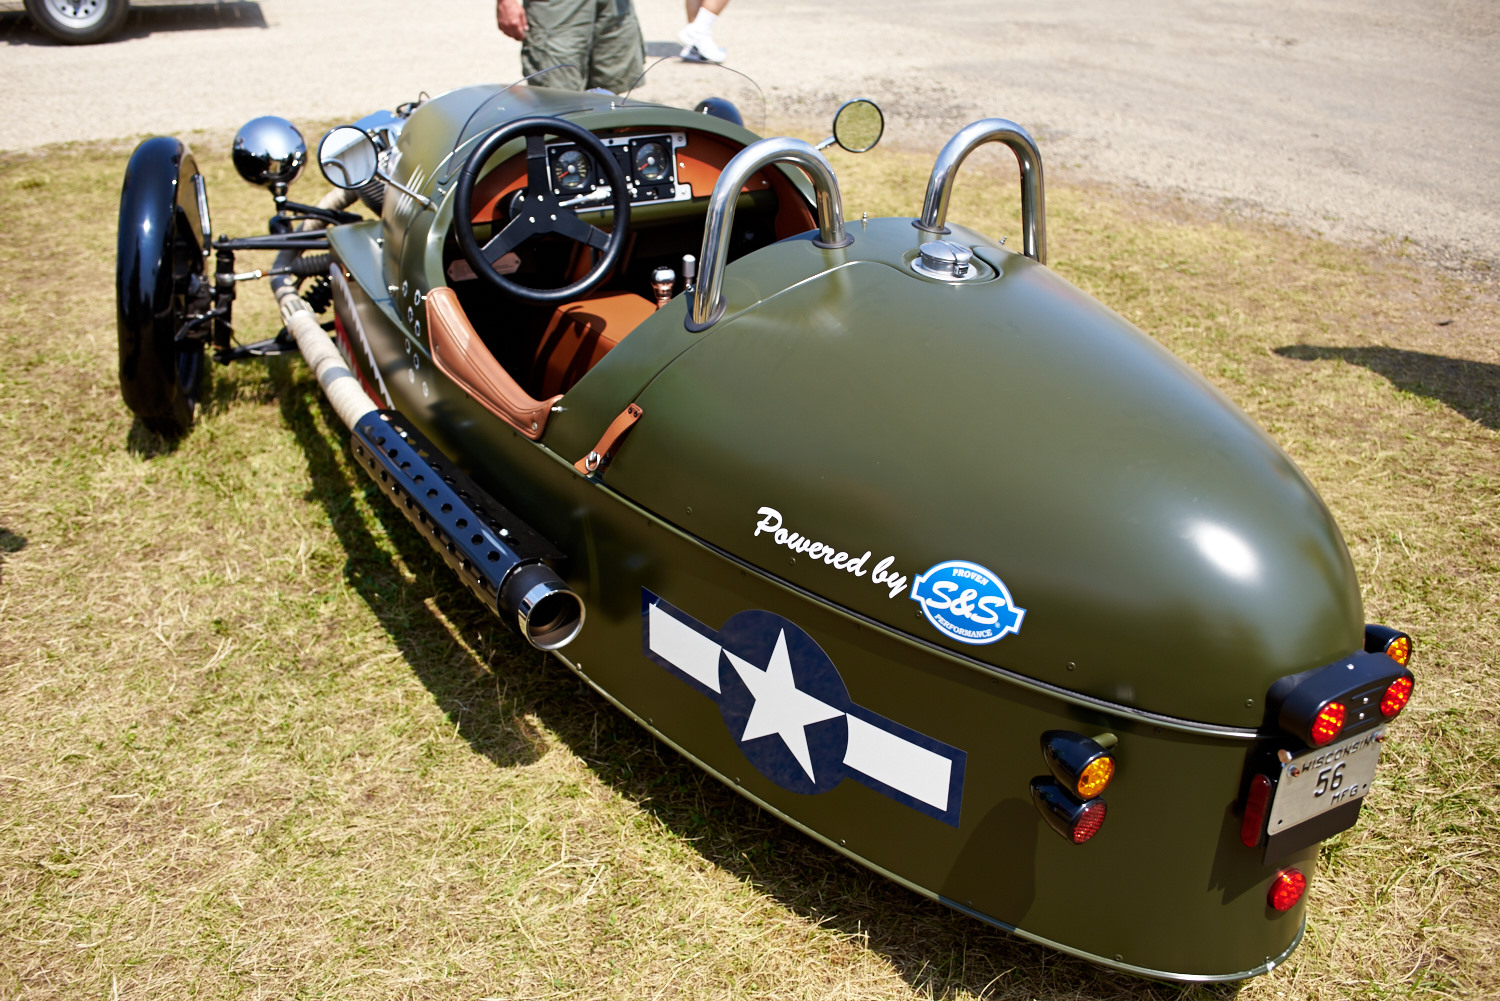 A Morgan Three Wheeler. The engine is made by Wisconsin based S&S Performance.